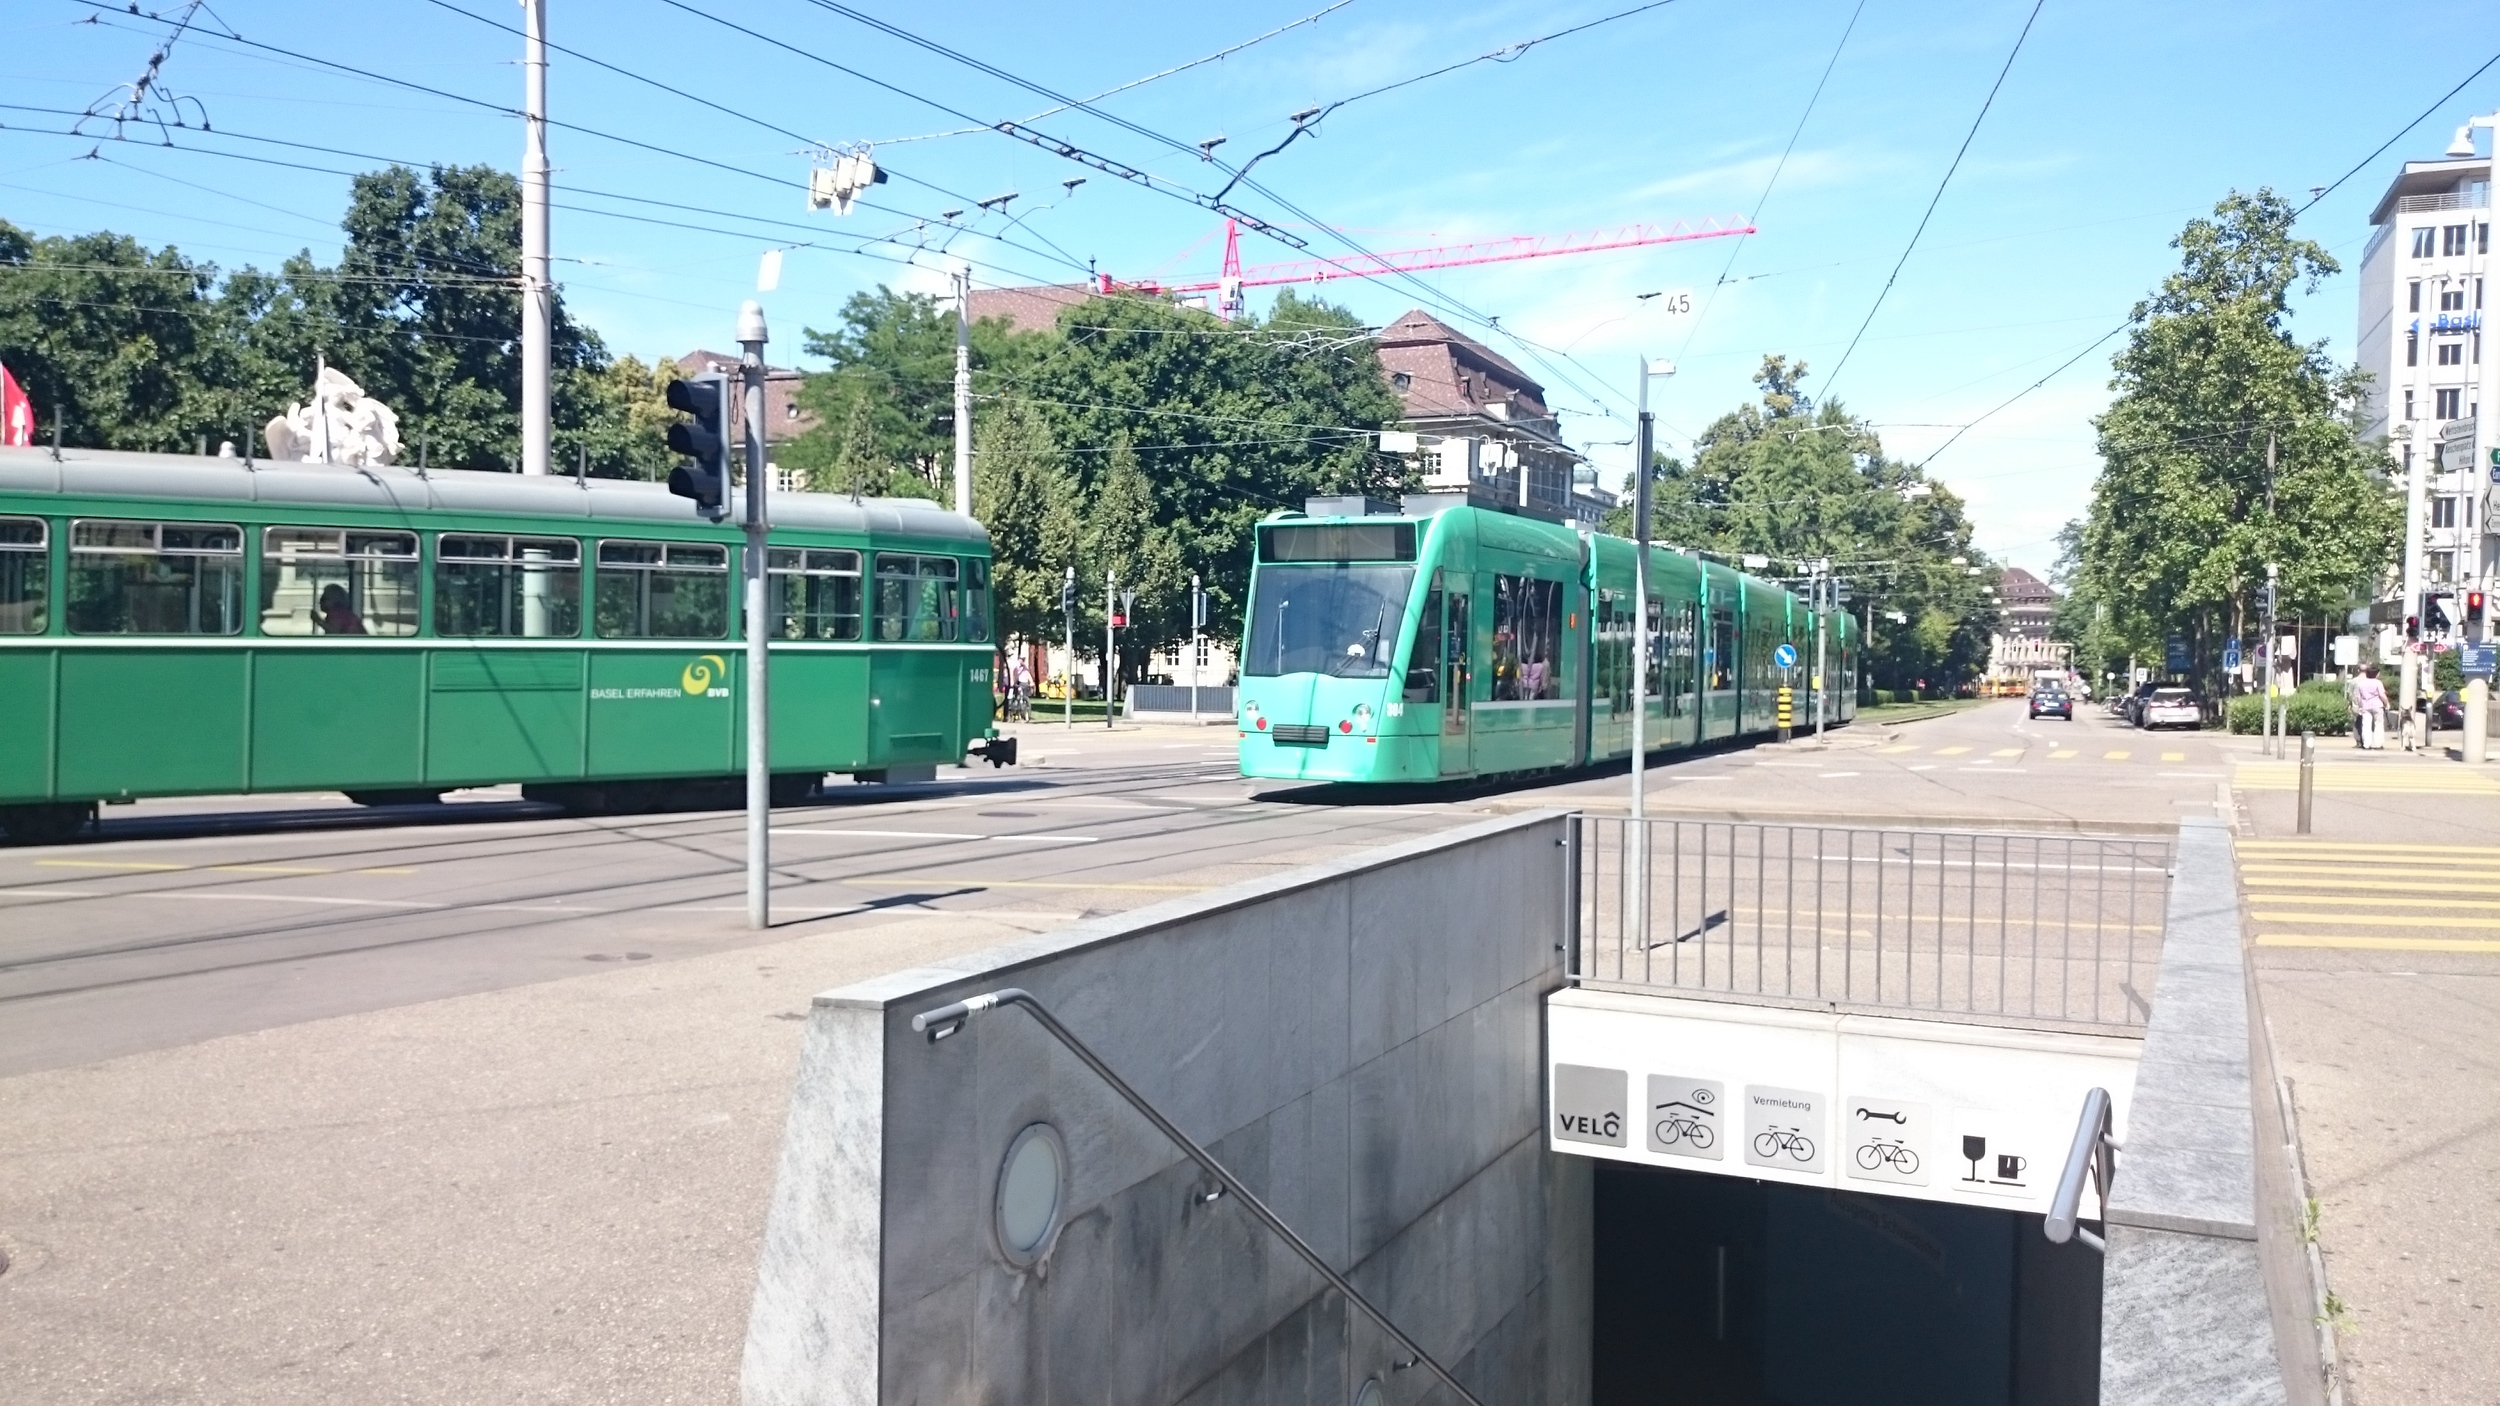 Teal Trolleys in Basel- a day pass is around 18 Francs... omg